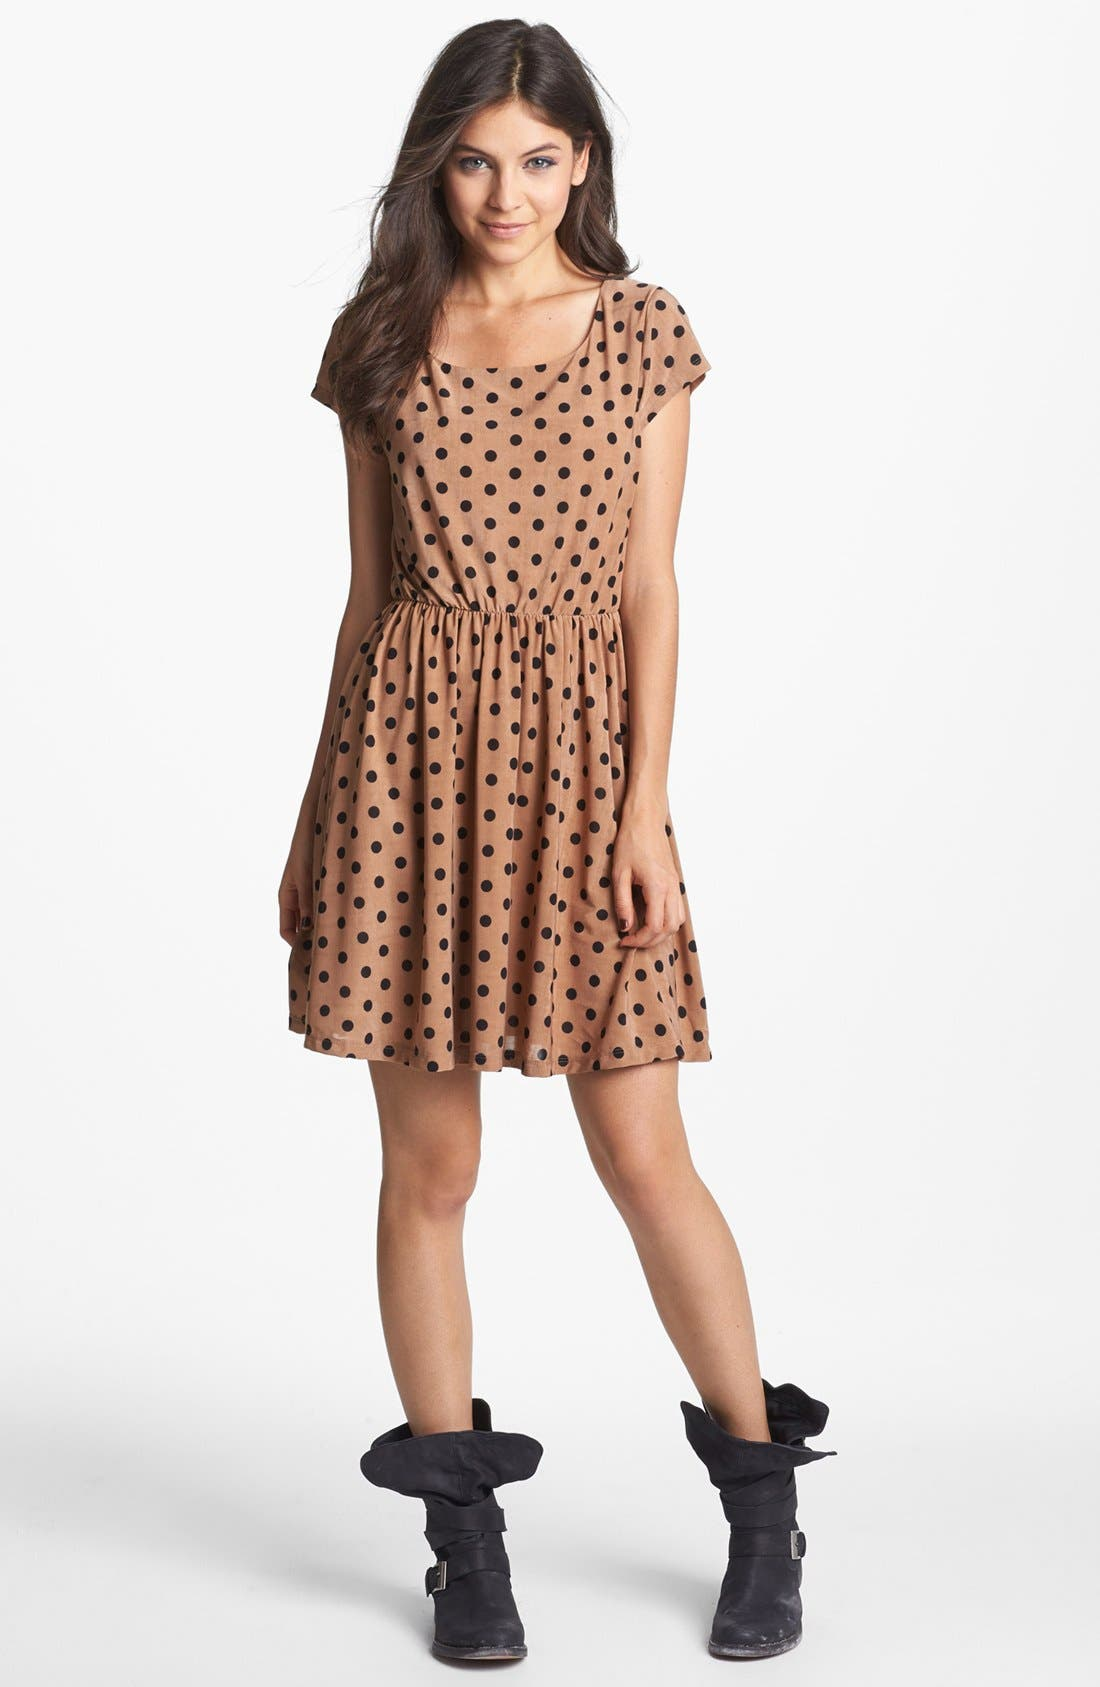 Alternate Image 1 Selected - Minty Dot Print Elastic Waist Dress (Juniors) (Online Only)